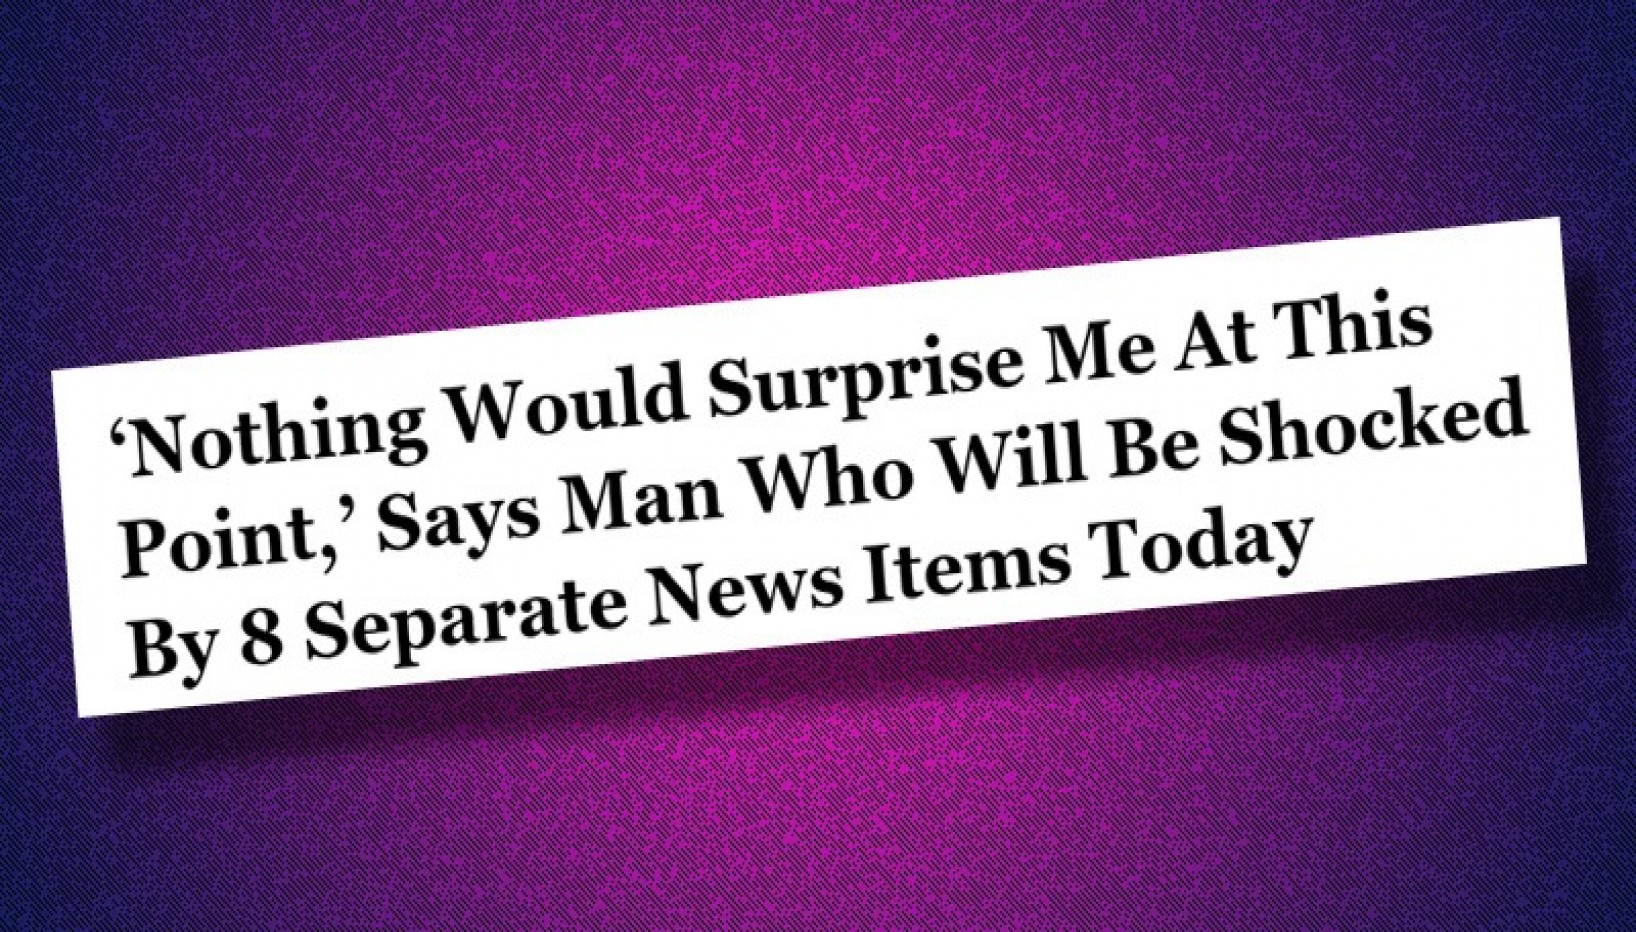 10 'The Onion' Headlines That Have No Business Being As Relatable As They Are